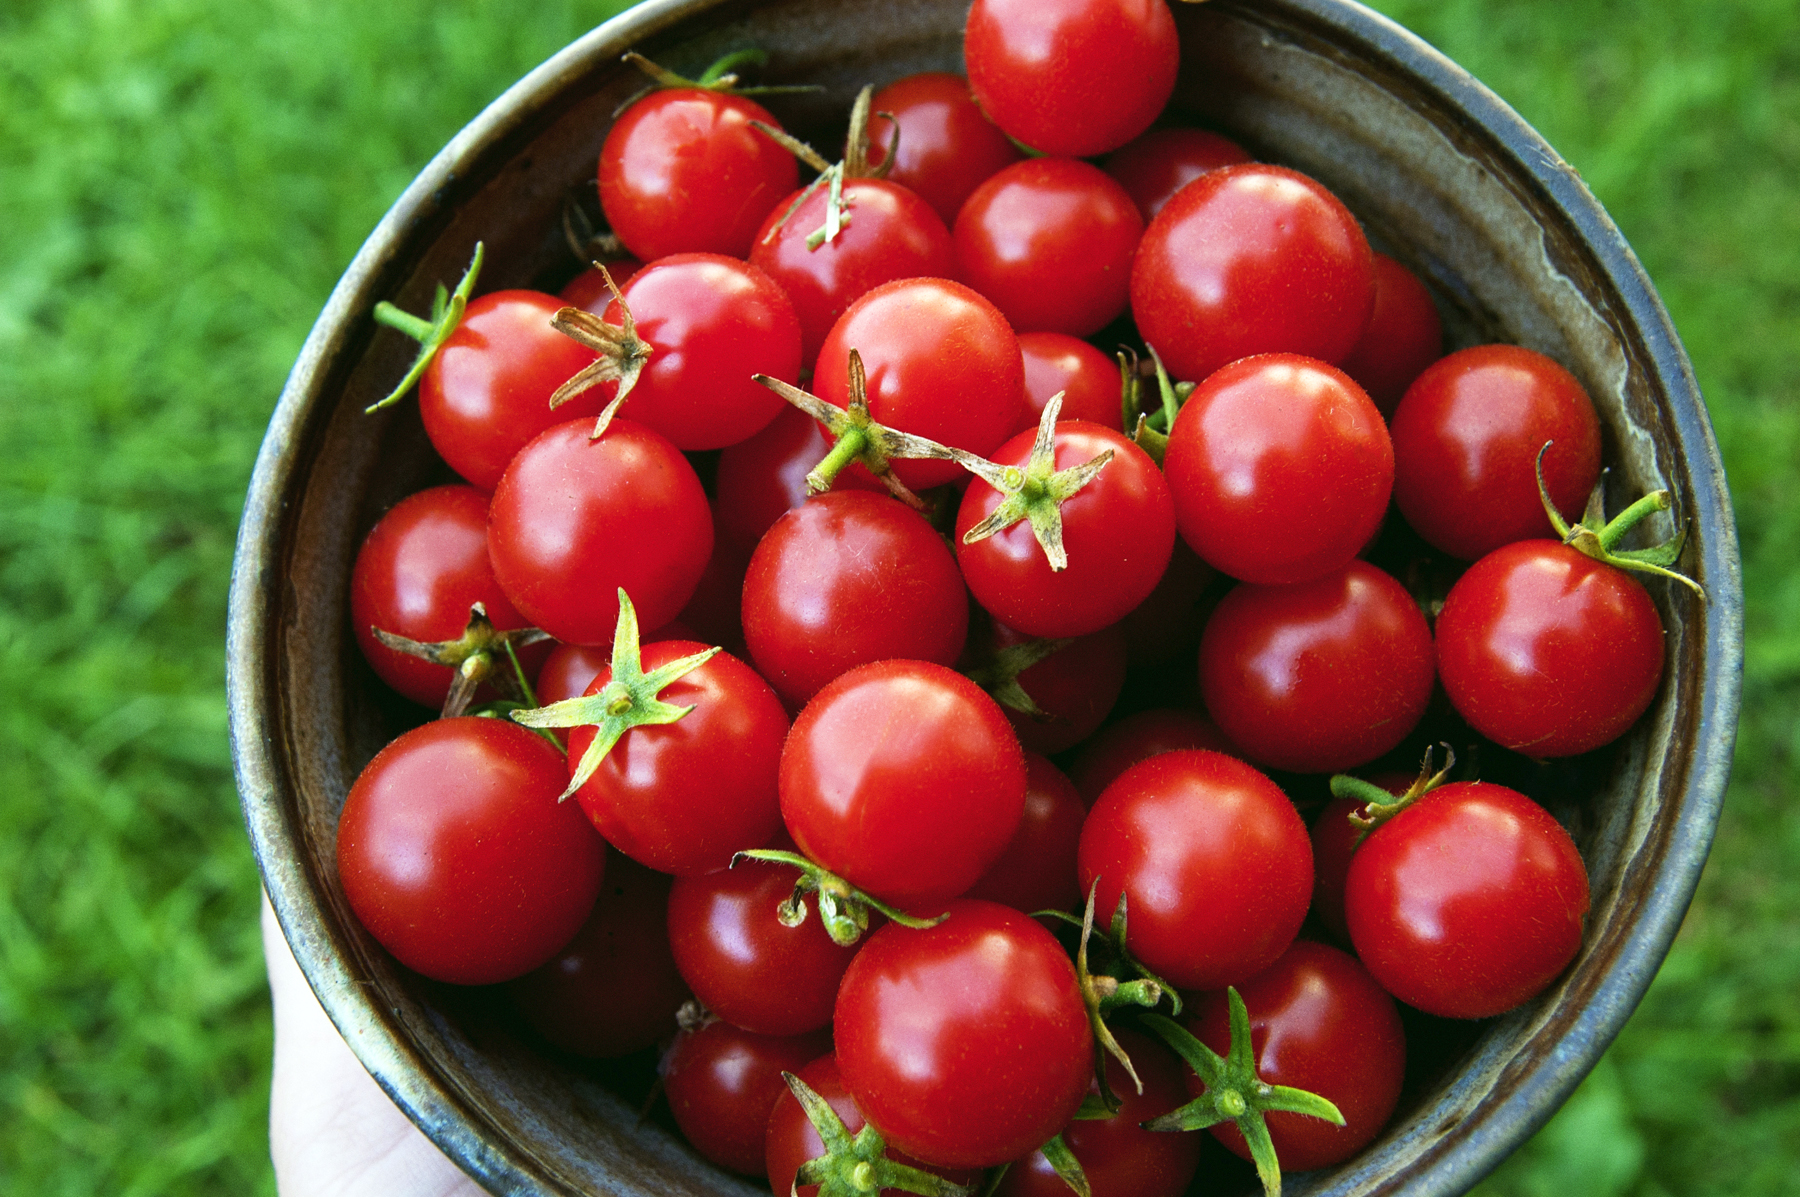 Home & Garden: Juicy Insider Info on Tomatoes - Newport ...